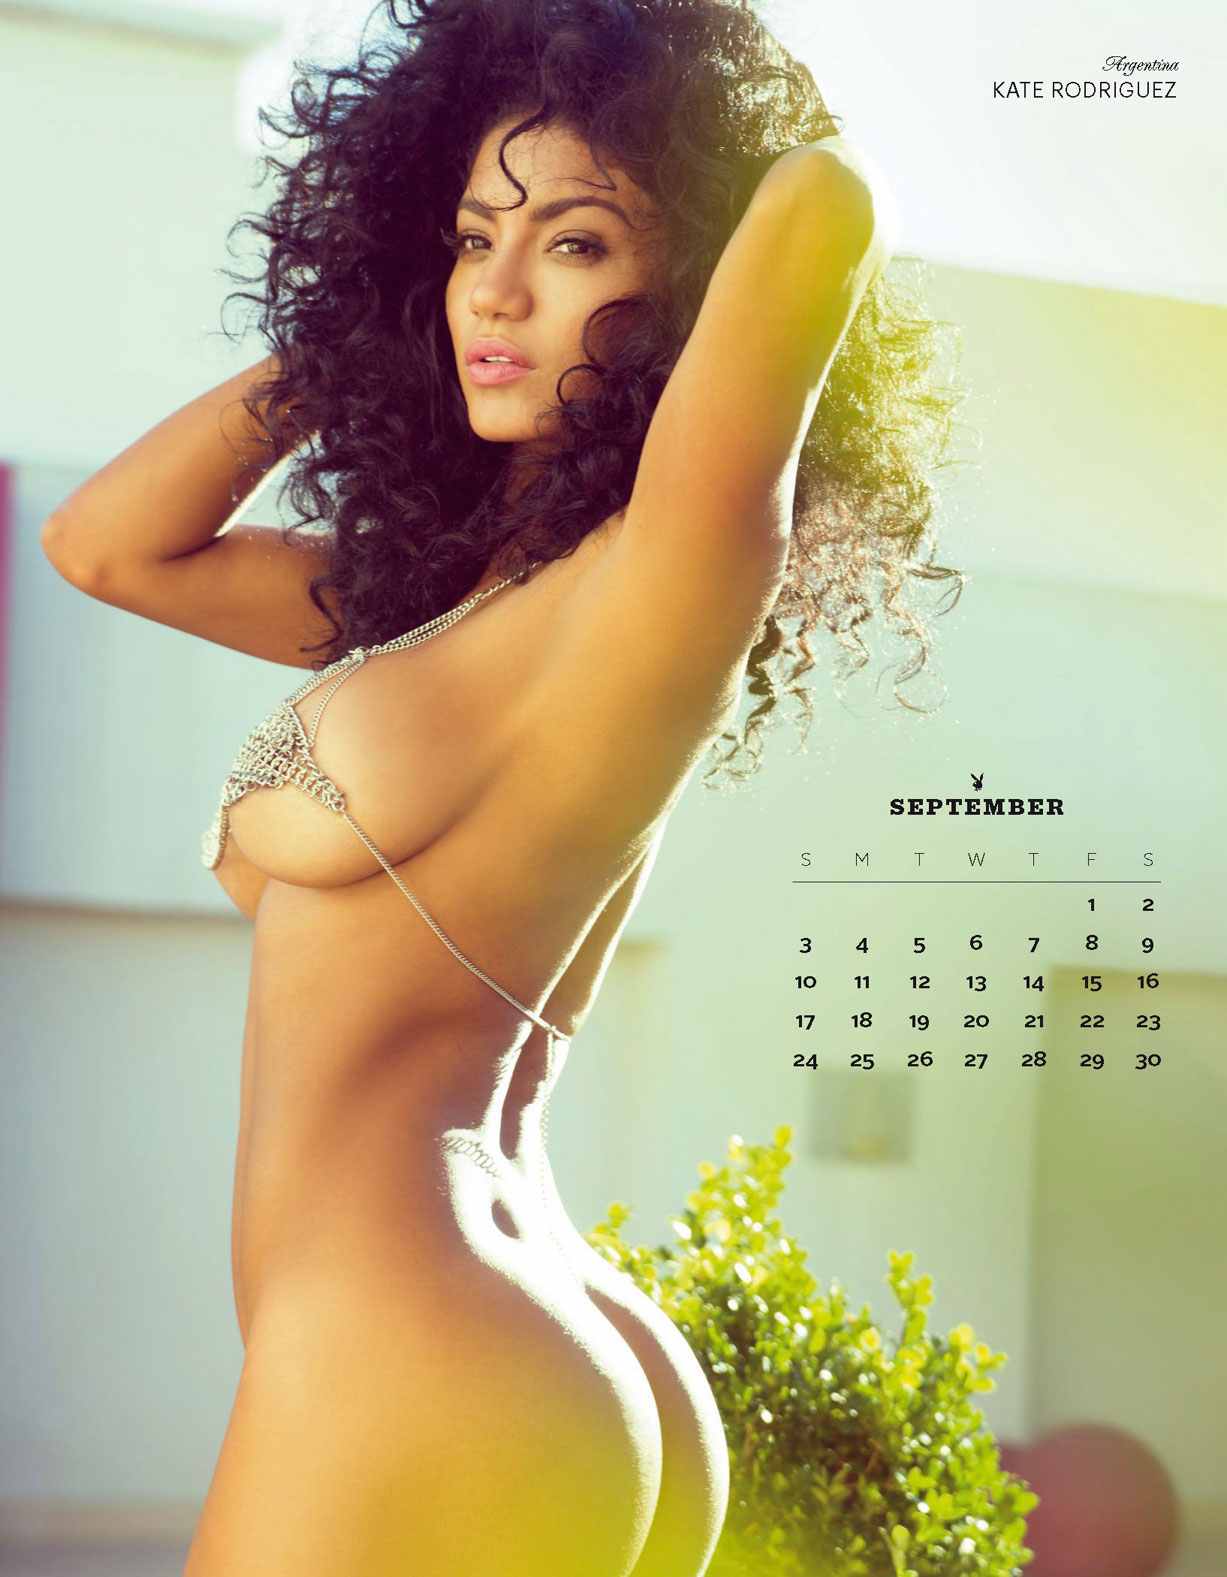 Playboy USA 2017 Official Calendar - Playmates Around the World - Kate Rodrigues | Argentina